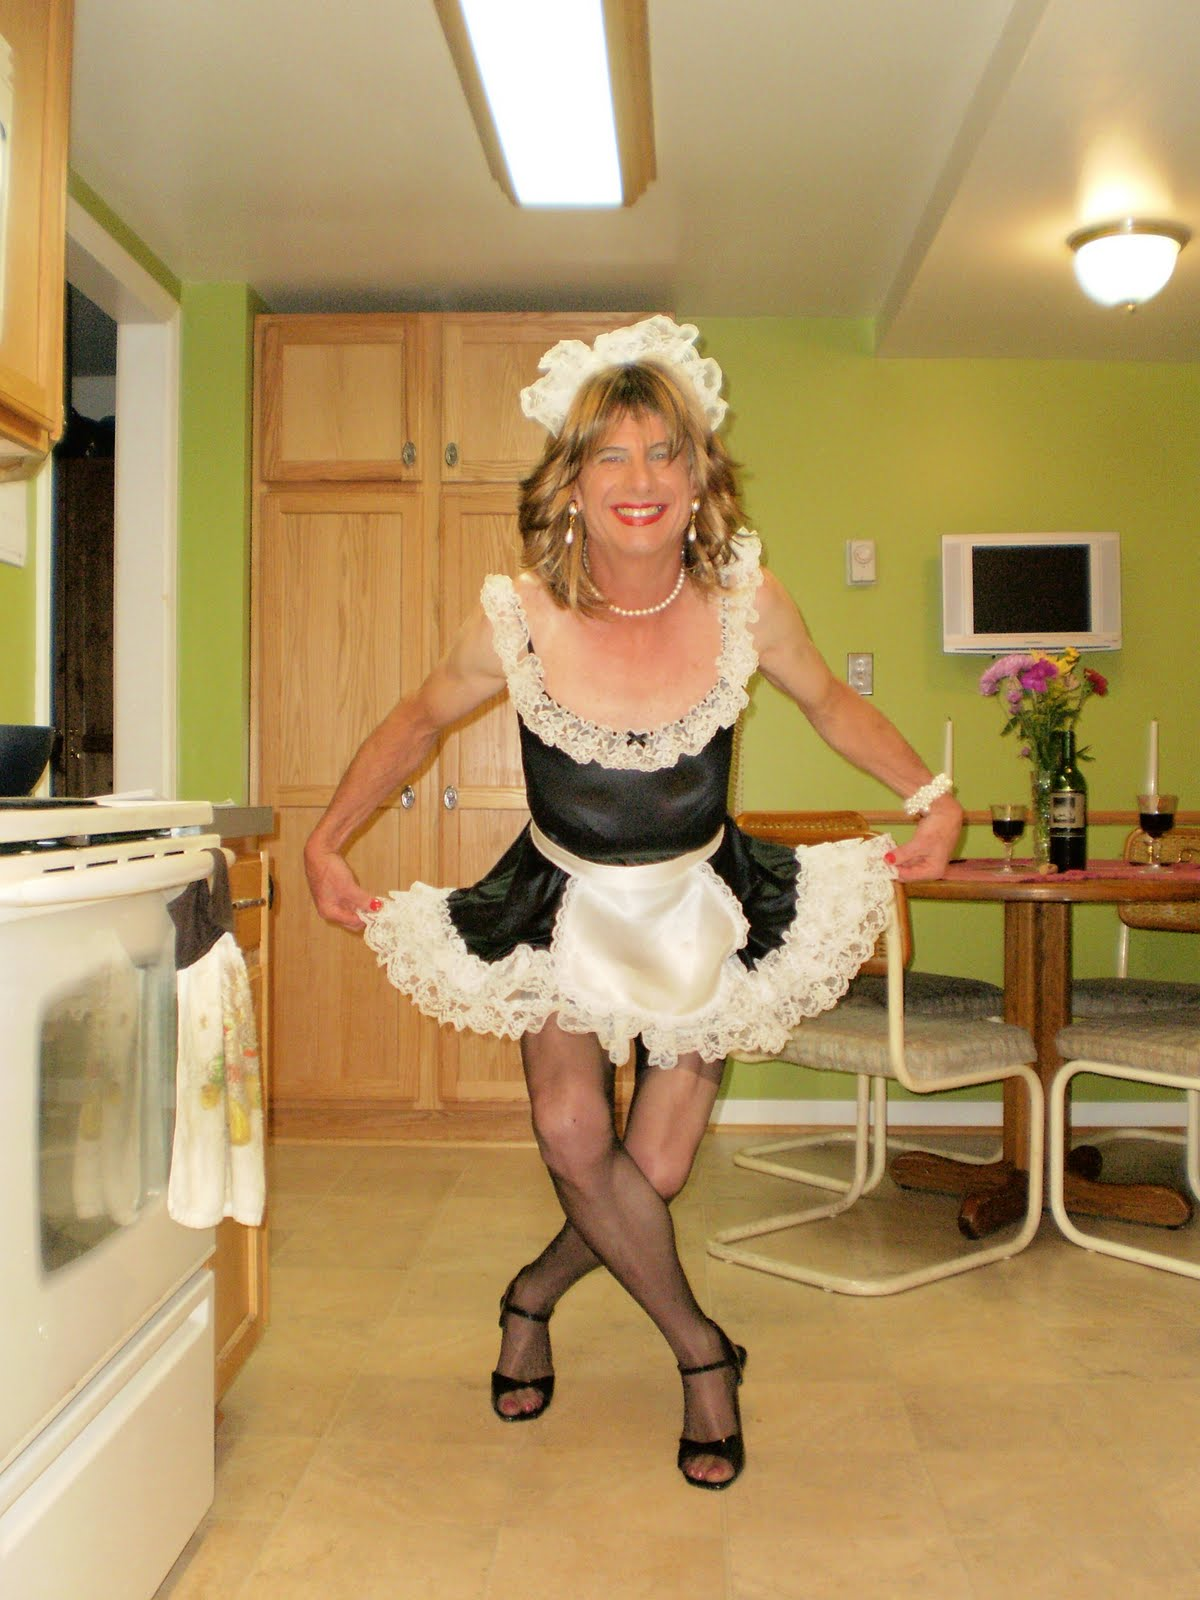 Sissy maid video